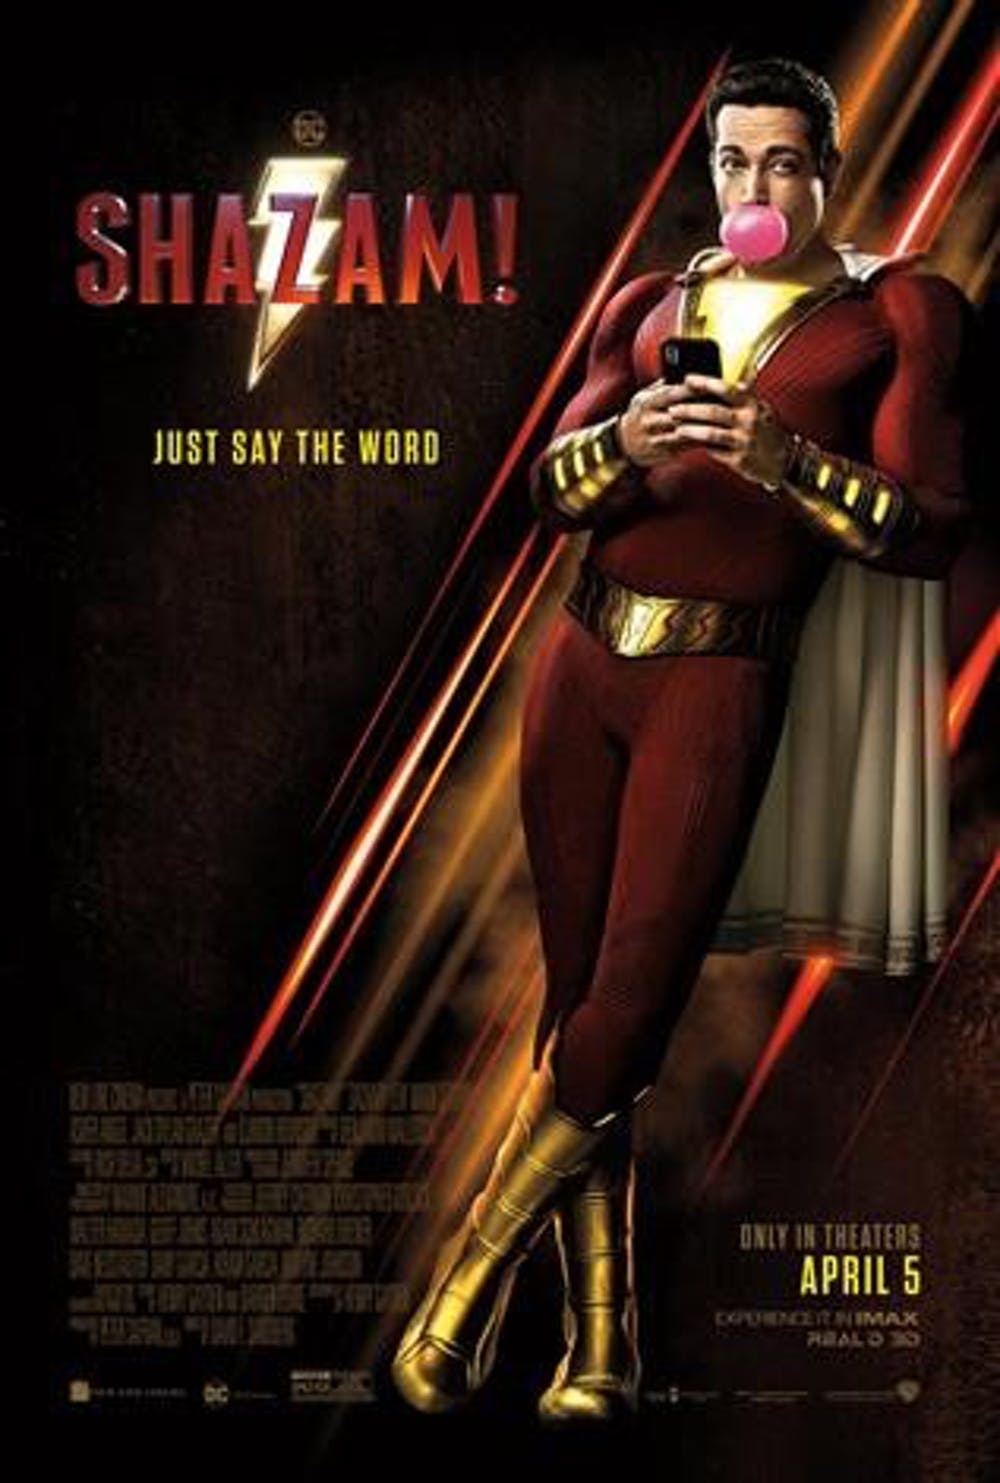 shazam-theatrical-poster